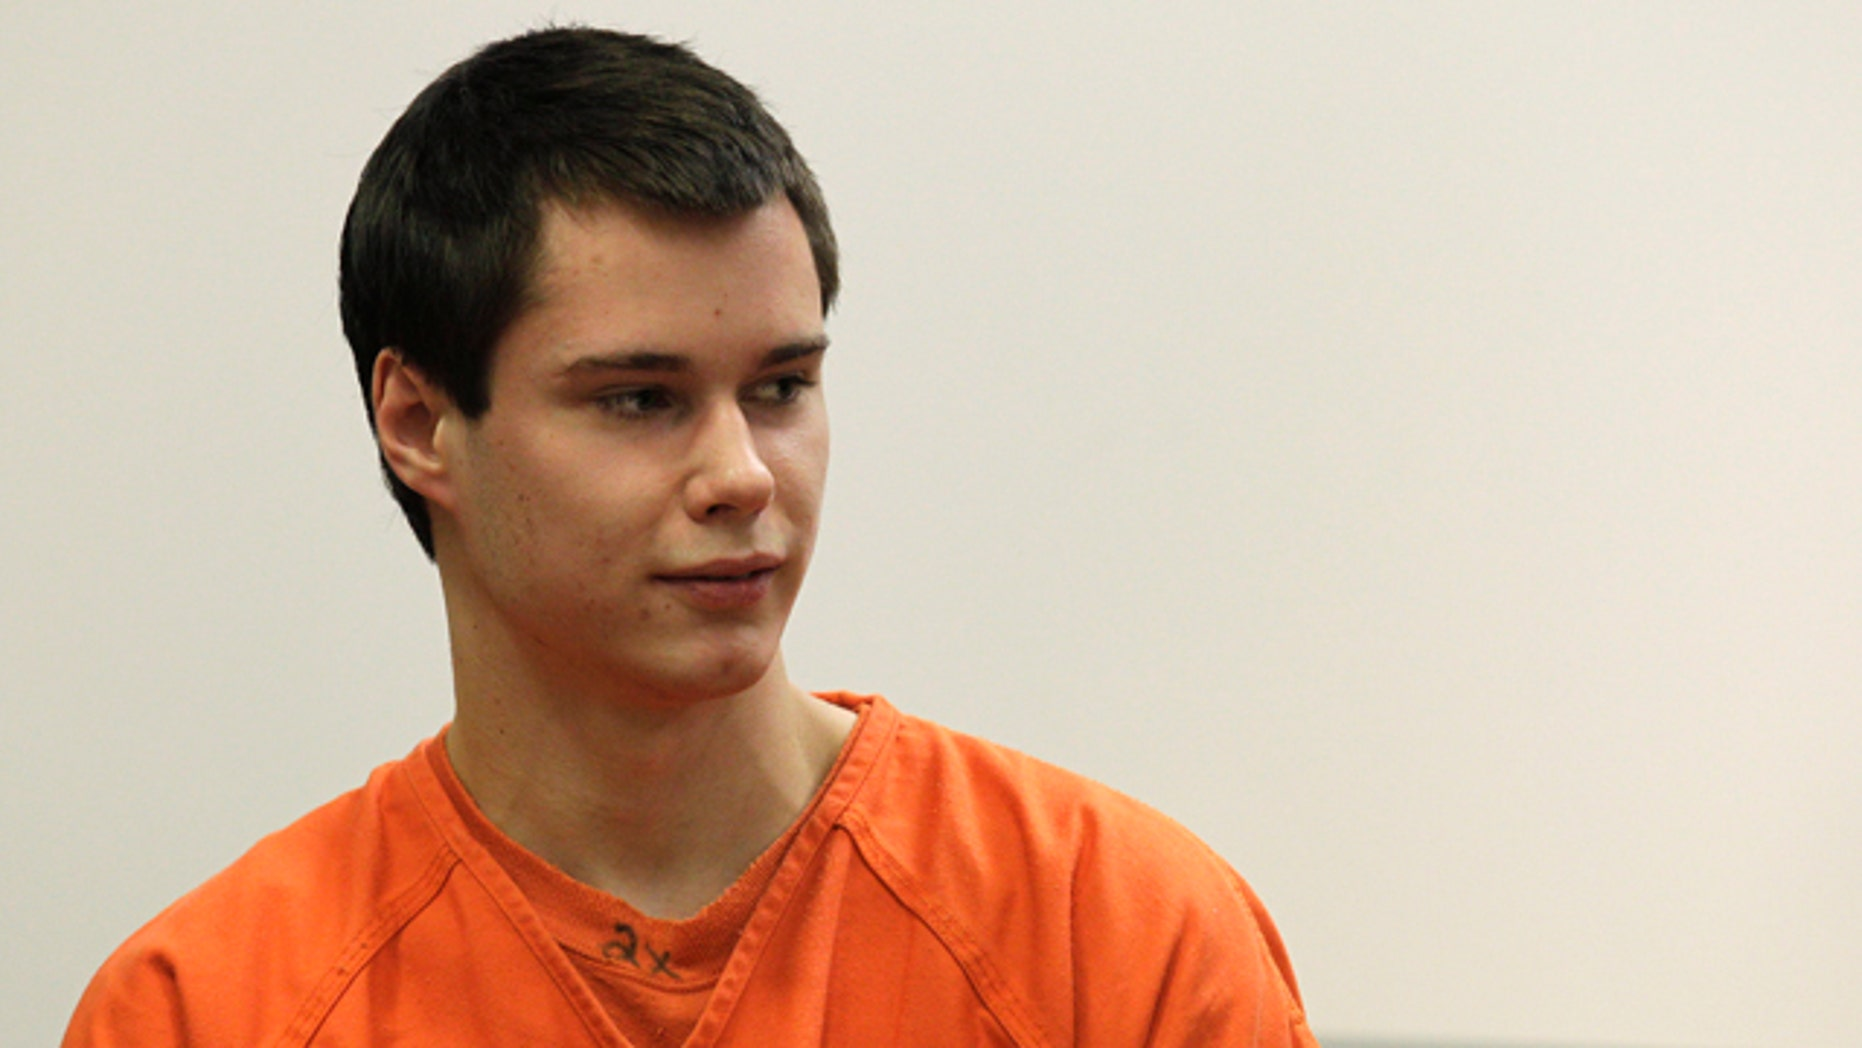 Dec. 16: Colton Harris-Moore, also known as the 'Barefoot Bandit' glances at the courtroom gallery as he walks to the defense table, in Island County Superior Court, in Coupeville, Wash.